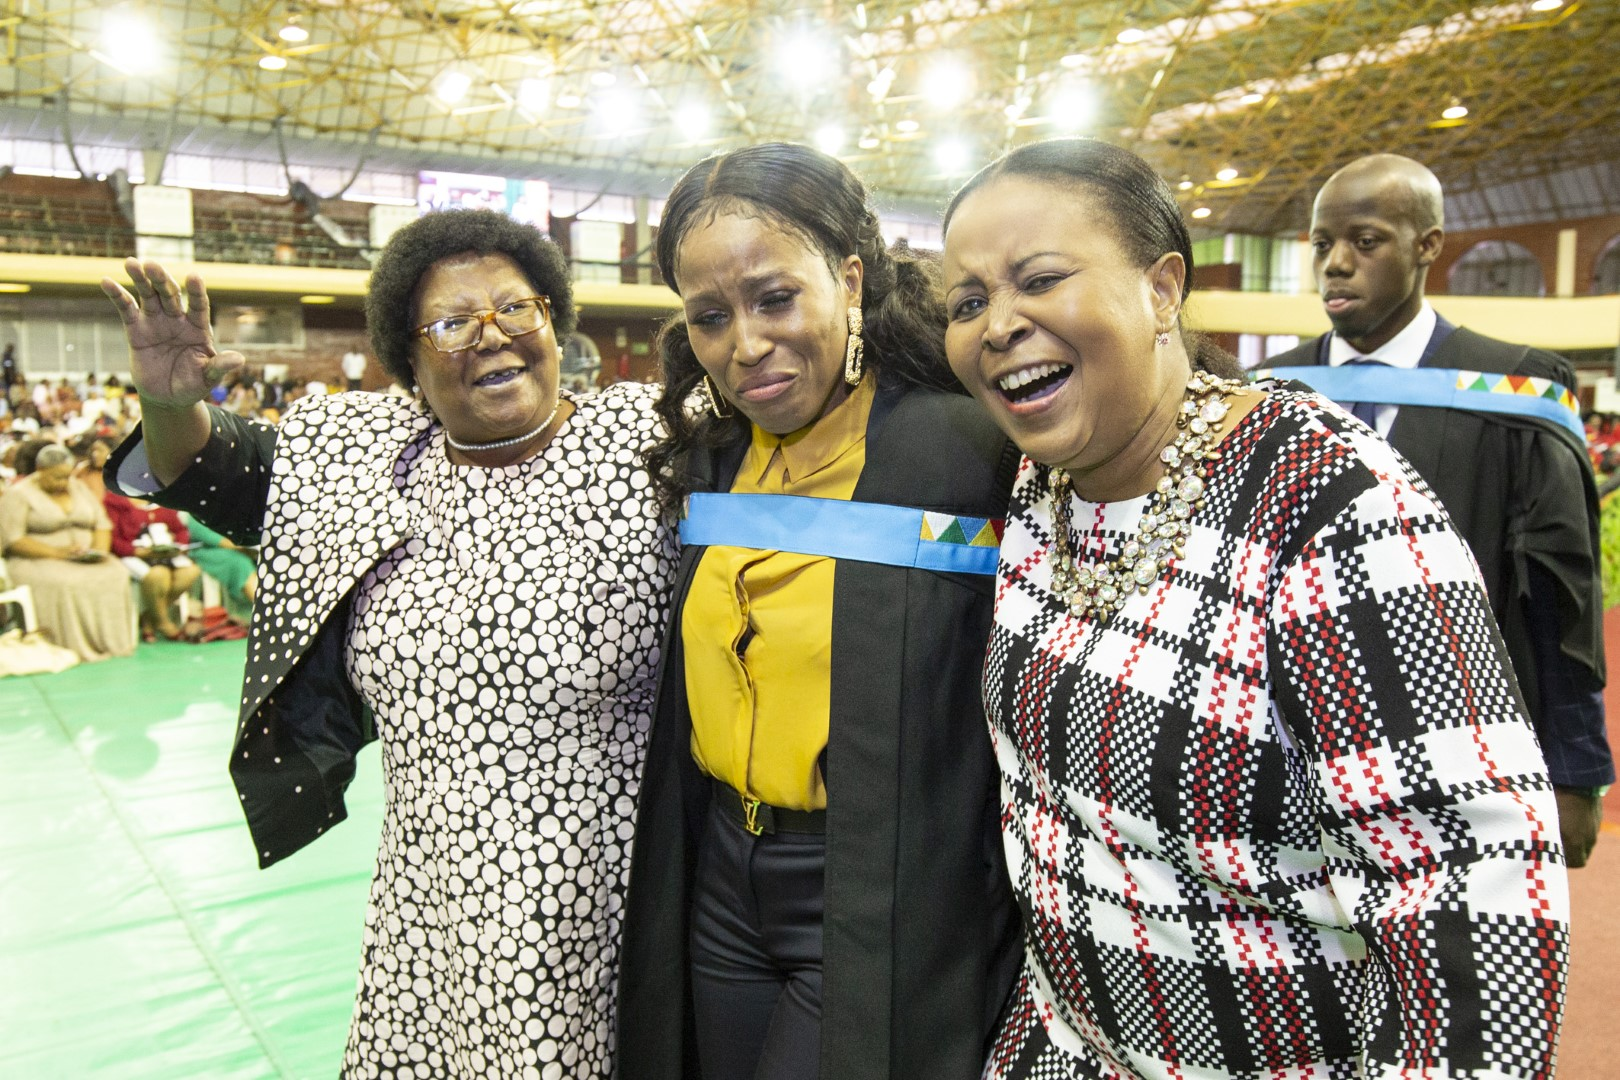 Emotional moment for graduate and family